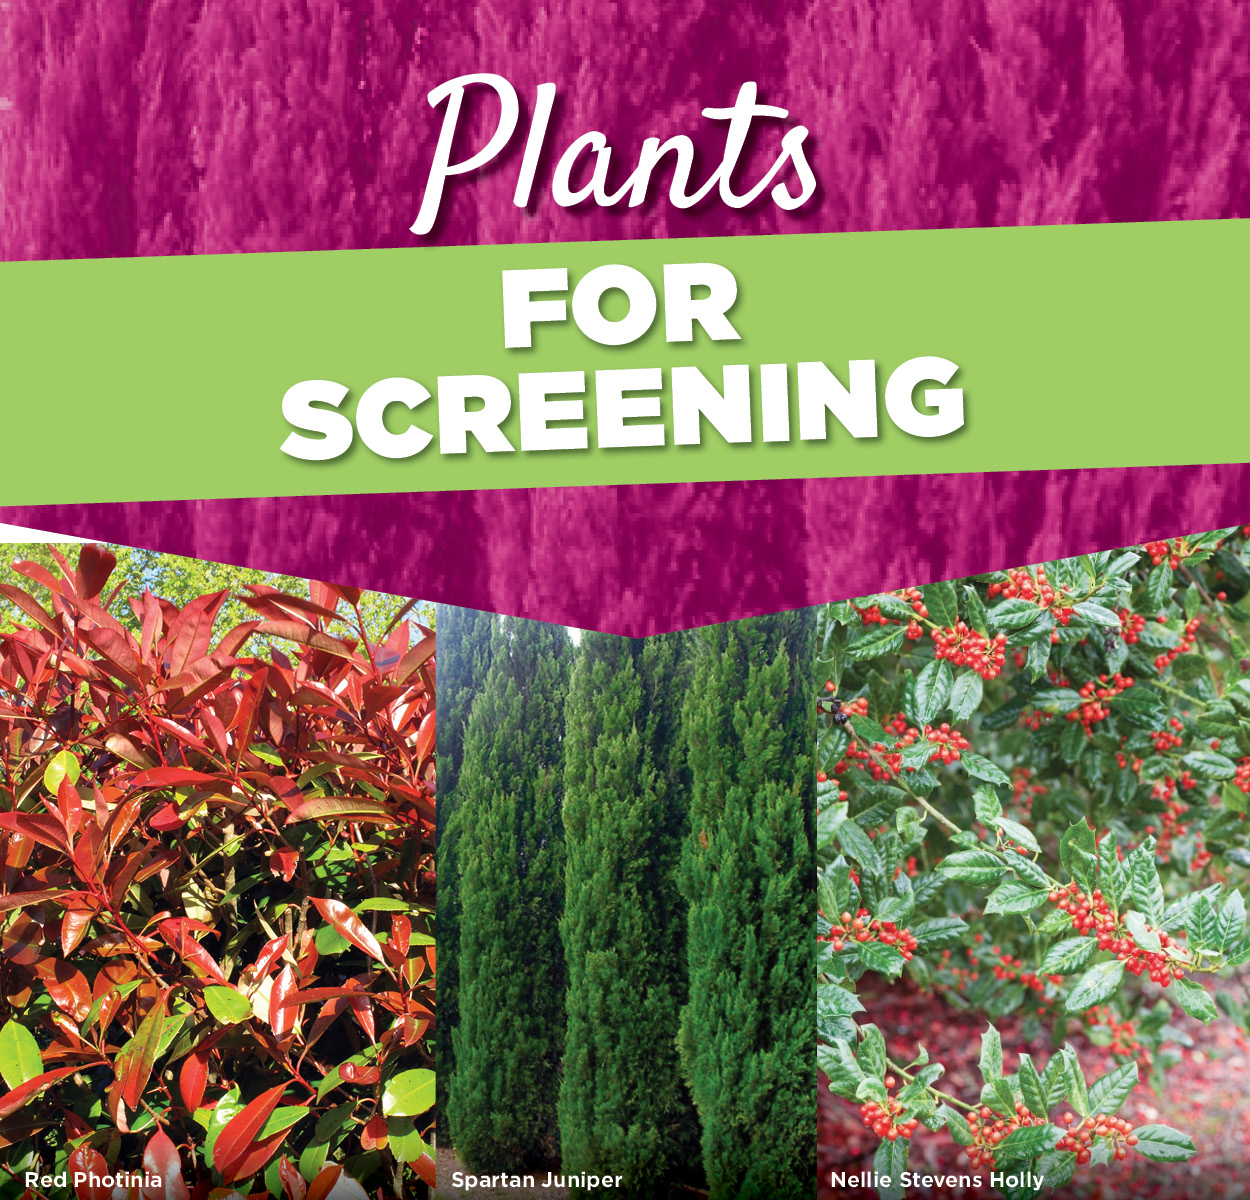 Plants for Screening